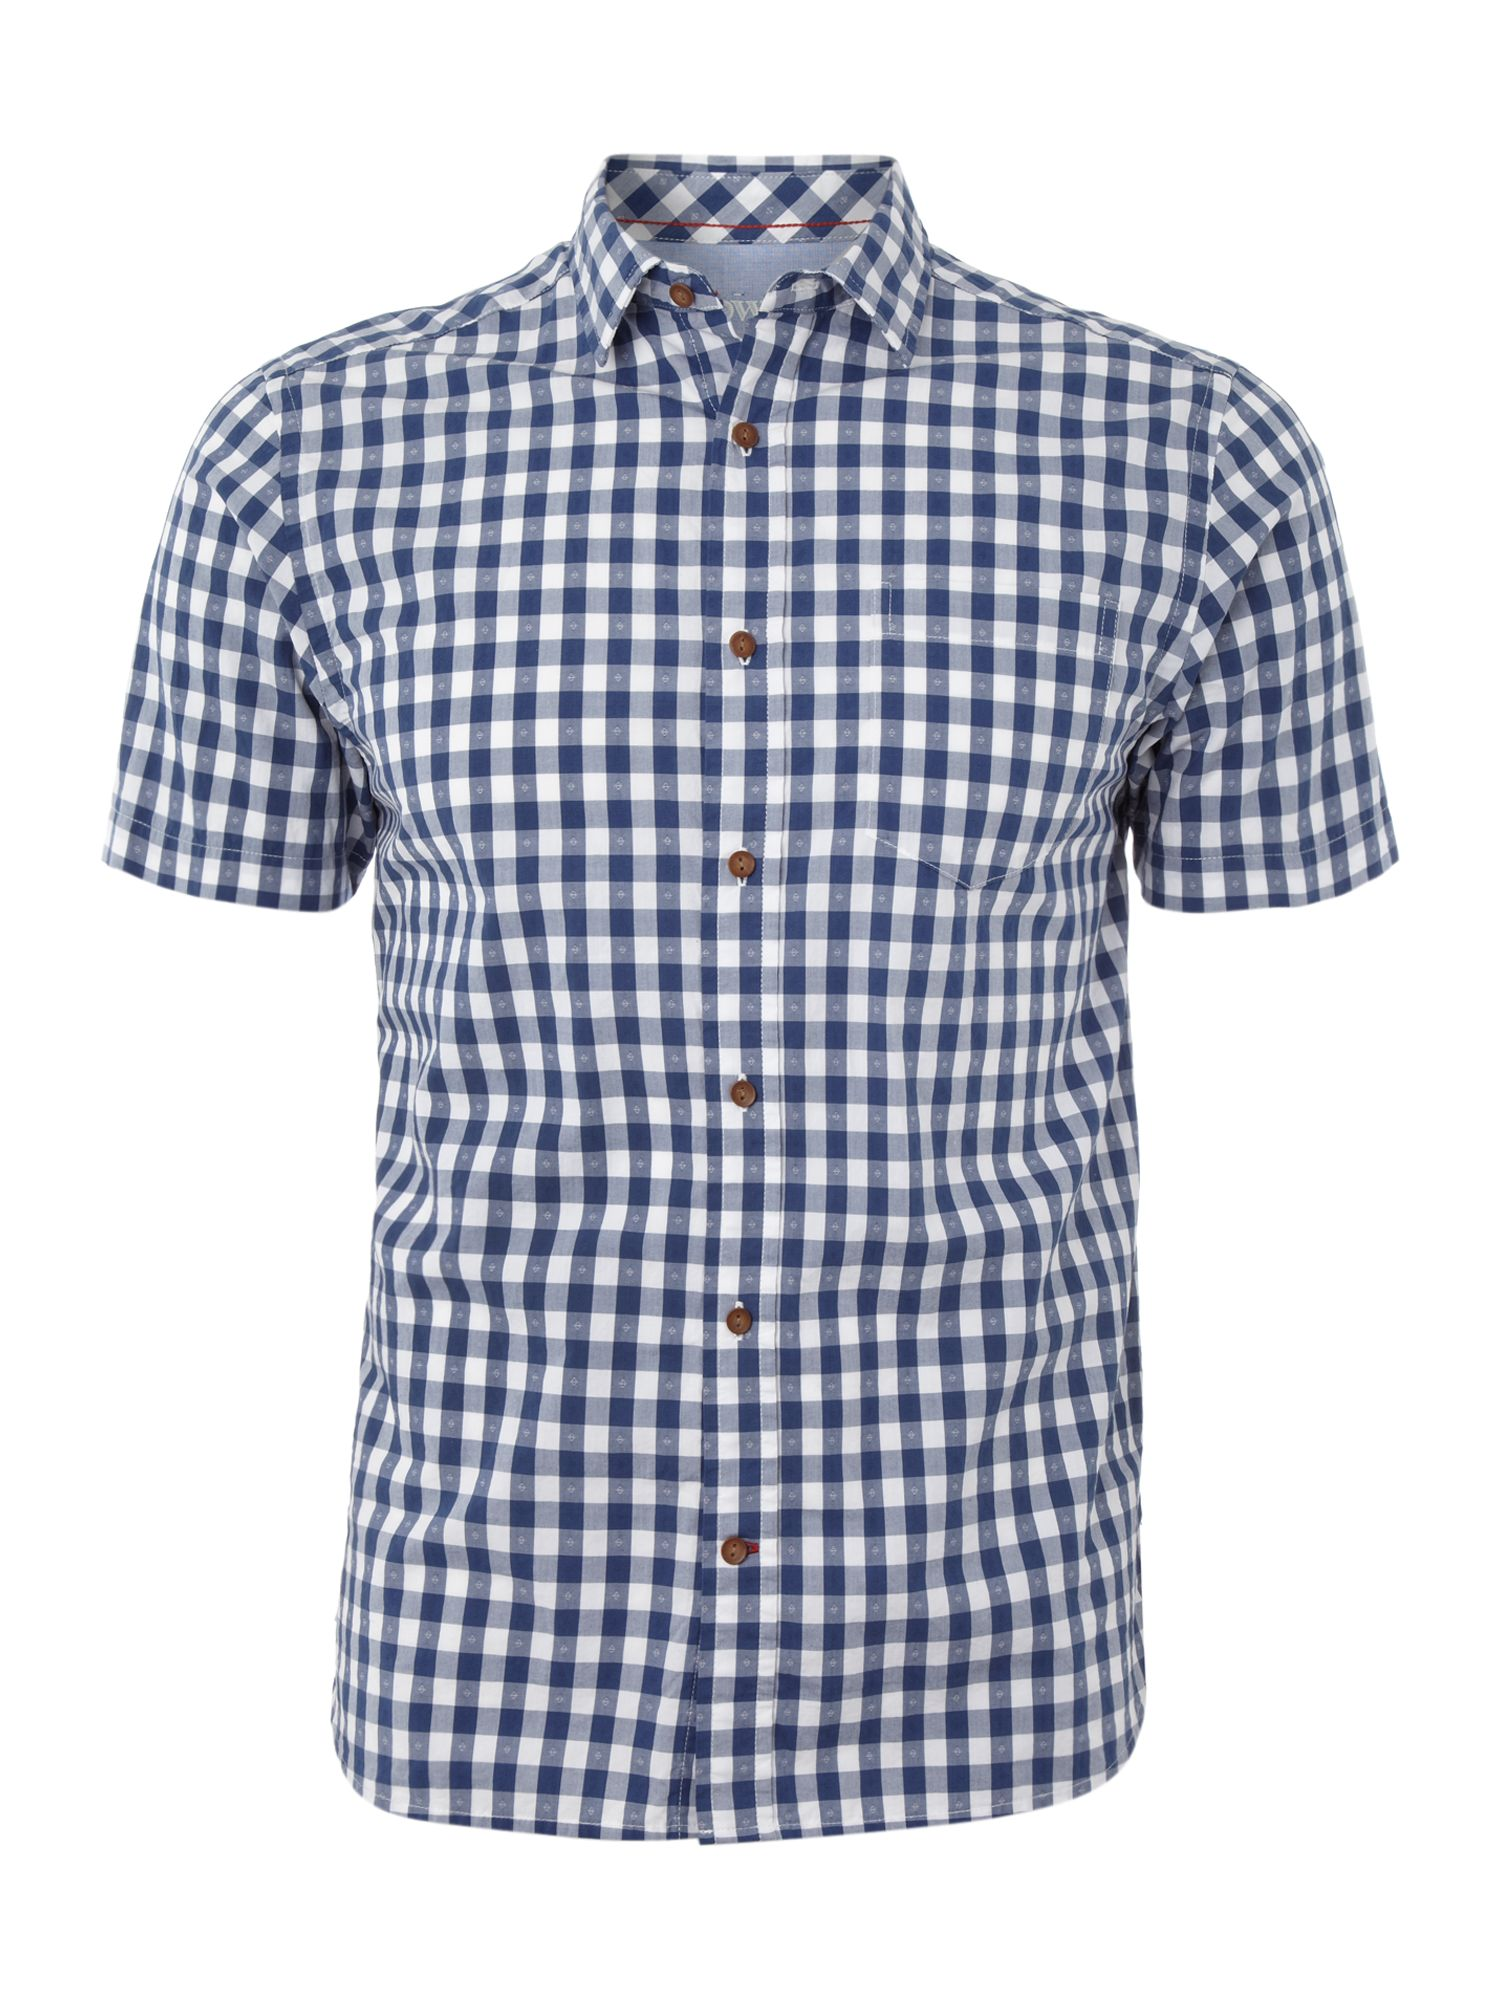 Short sleeved geary gingham shirt